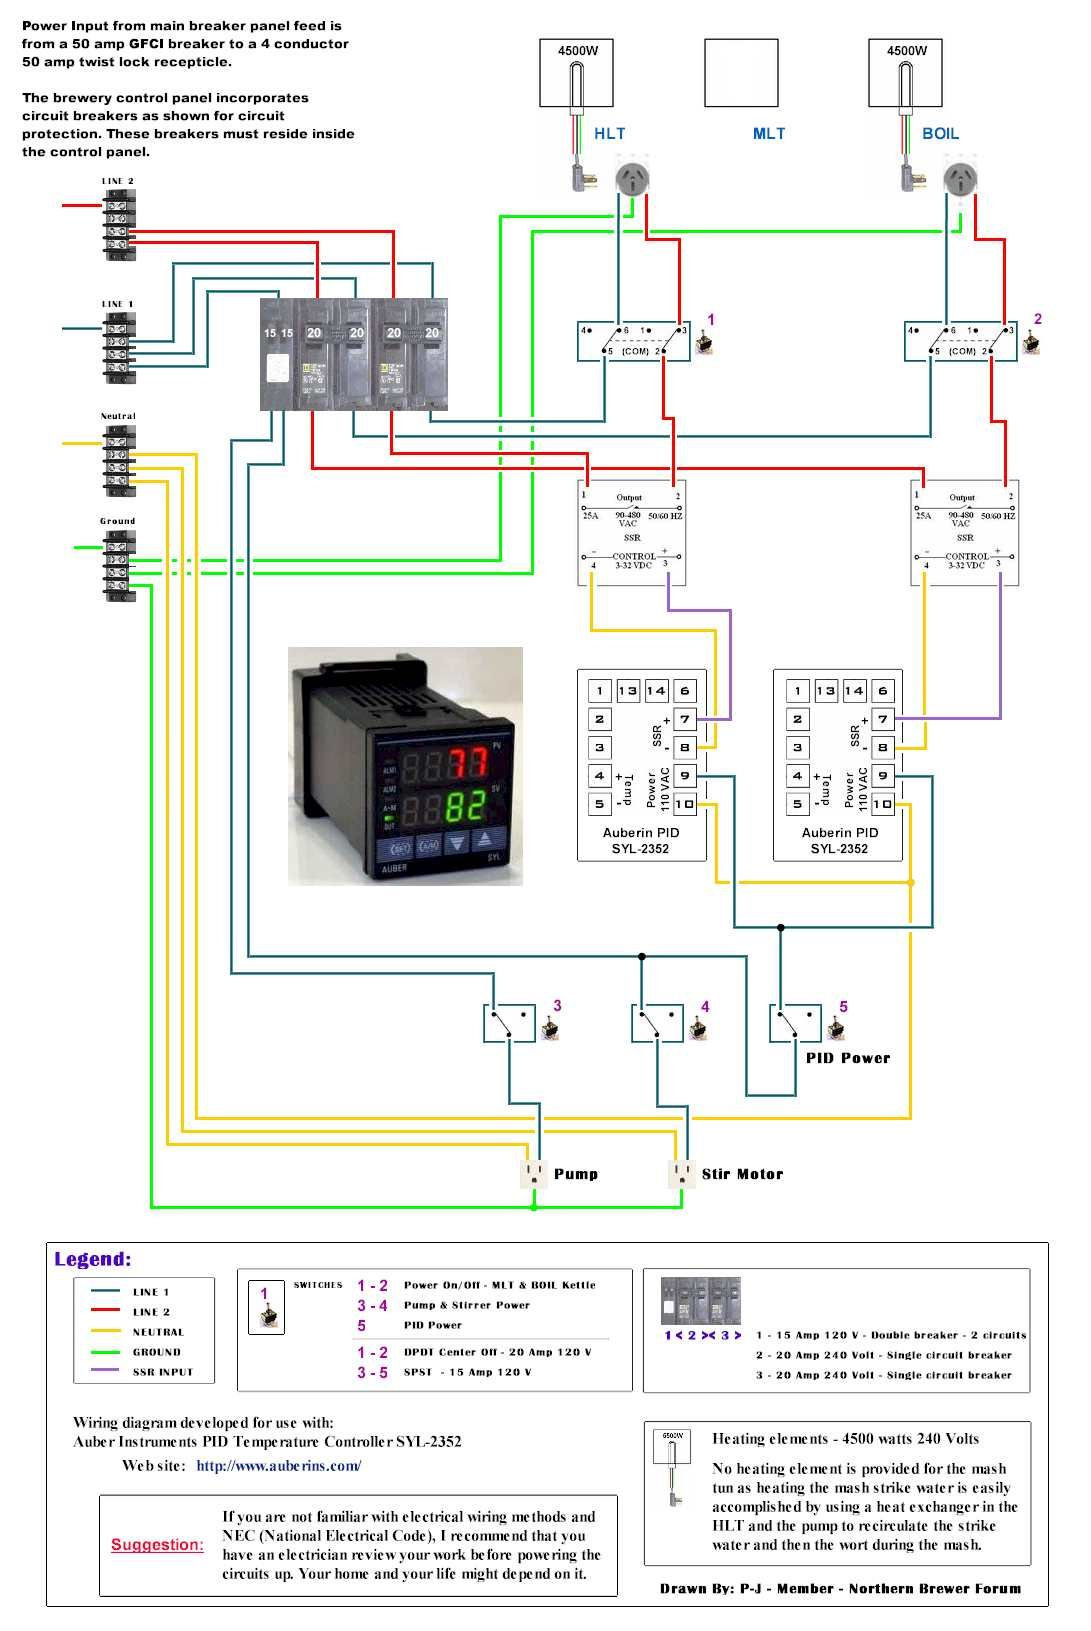 electric brewery wiring diagram with Homebrew Pid Temperature Control Circuit Diagram on 594089 further Ranco Digital Temperature Controller Wiring Diagram as well Unimar Brighter Lighting Solutions Tower Light Wire Diagram likewise 125v Plug Wiring Diagram also Flat Electrical Wire 120v.